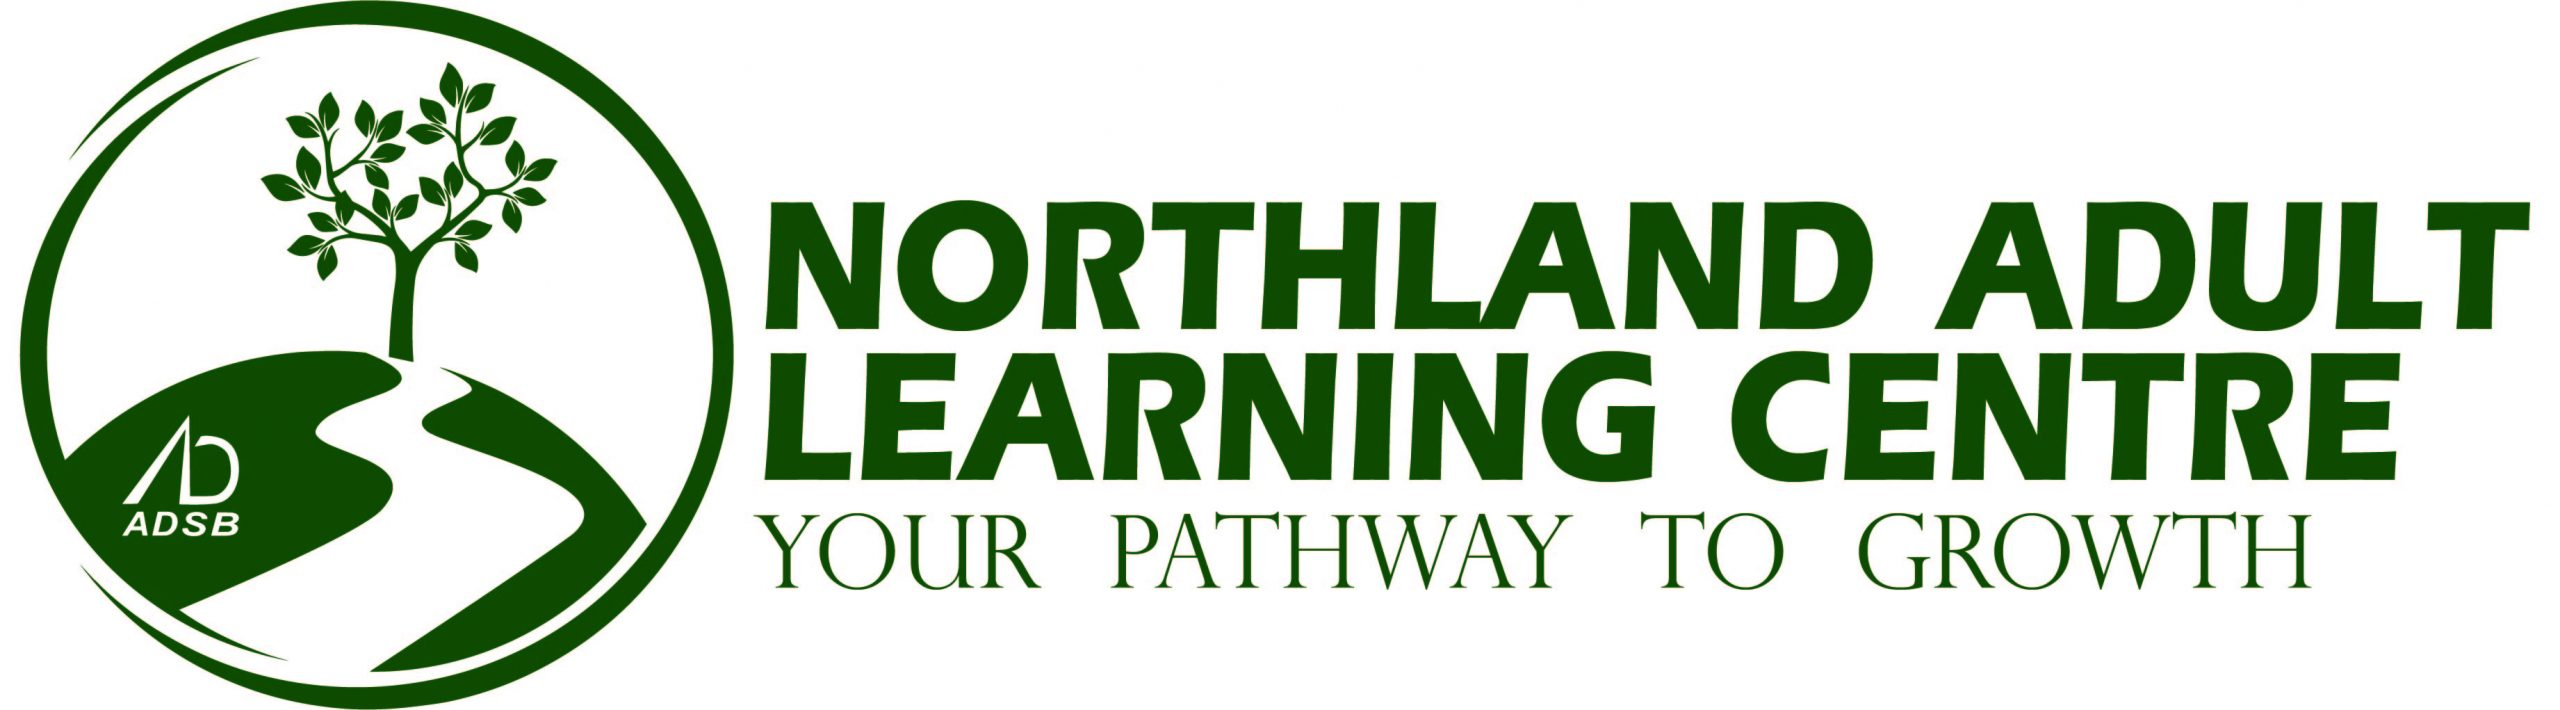 Northland Adult Learning Centre